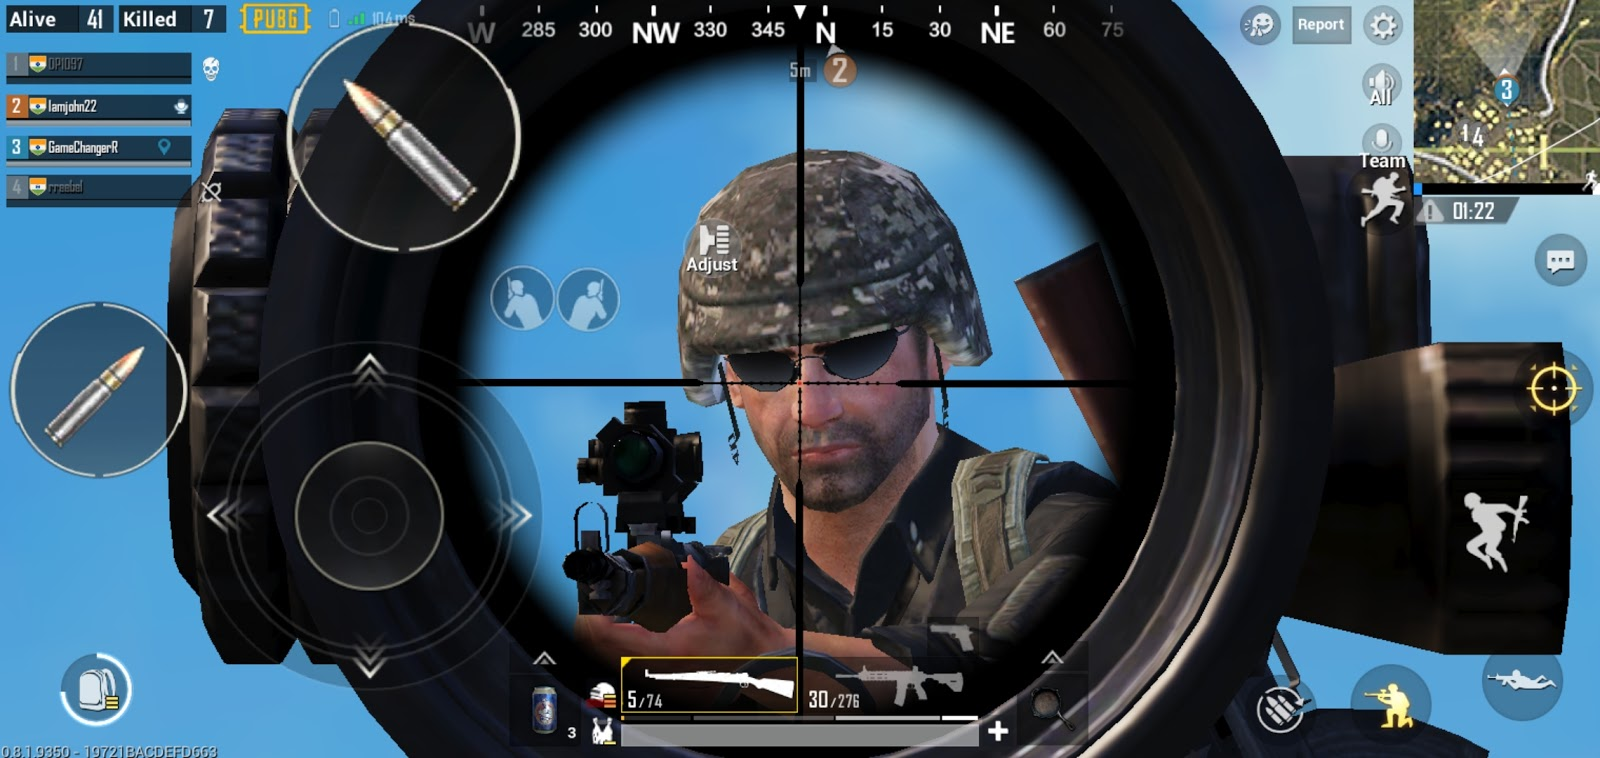 Play Pubg Mobile In Hd For Android Users Play Pubg In Hd Graphics All